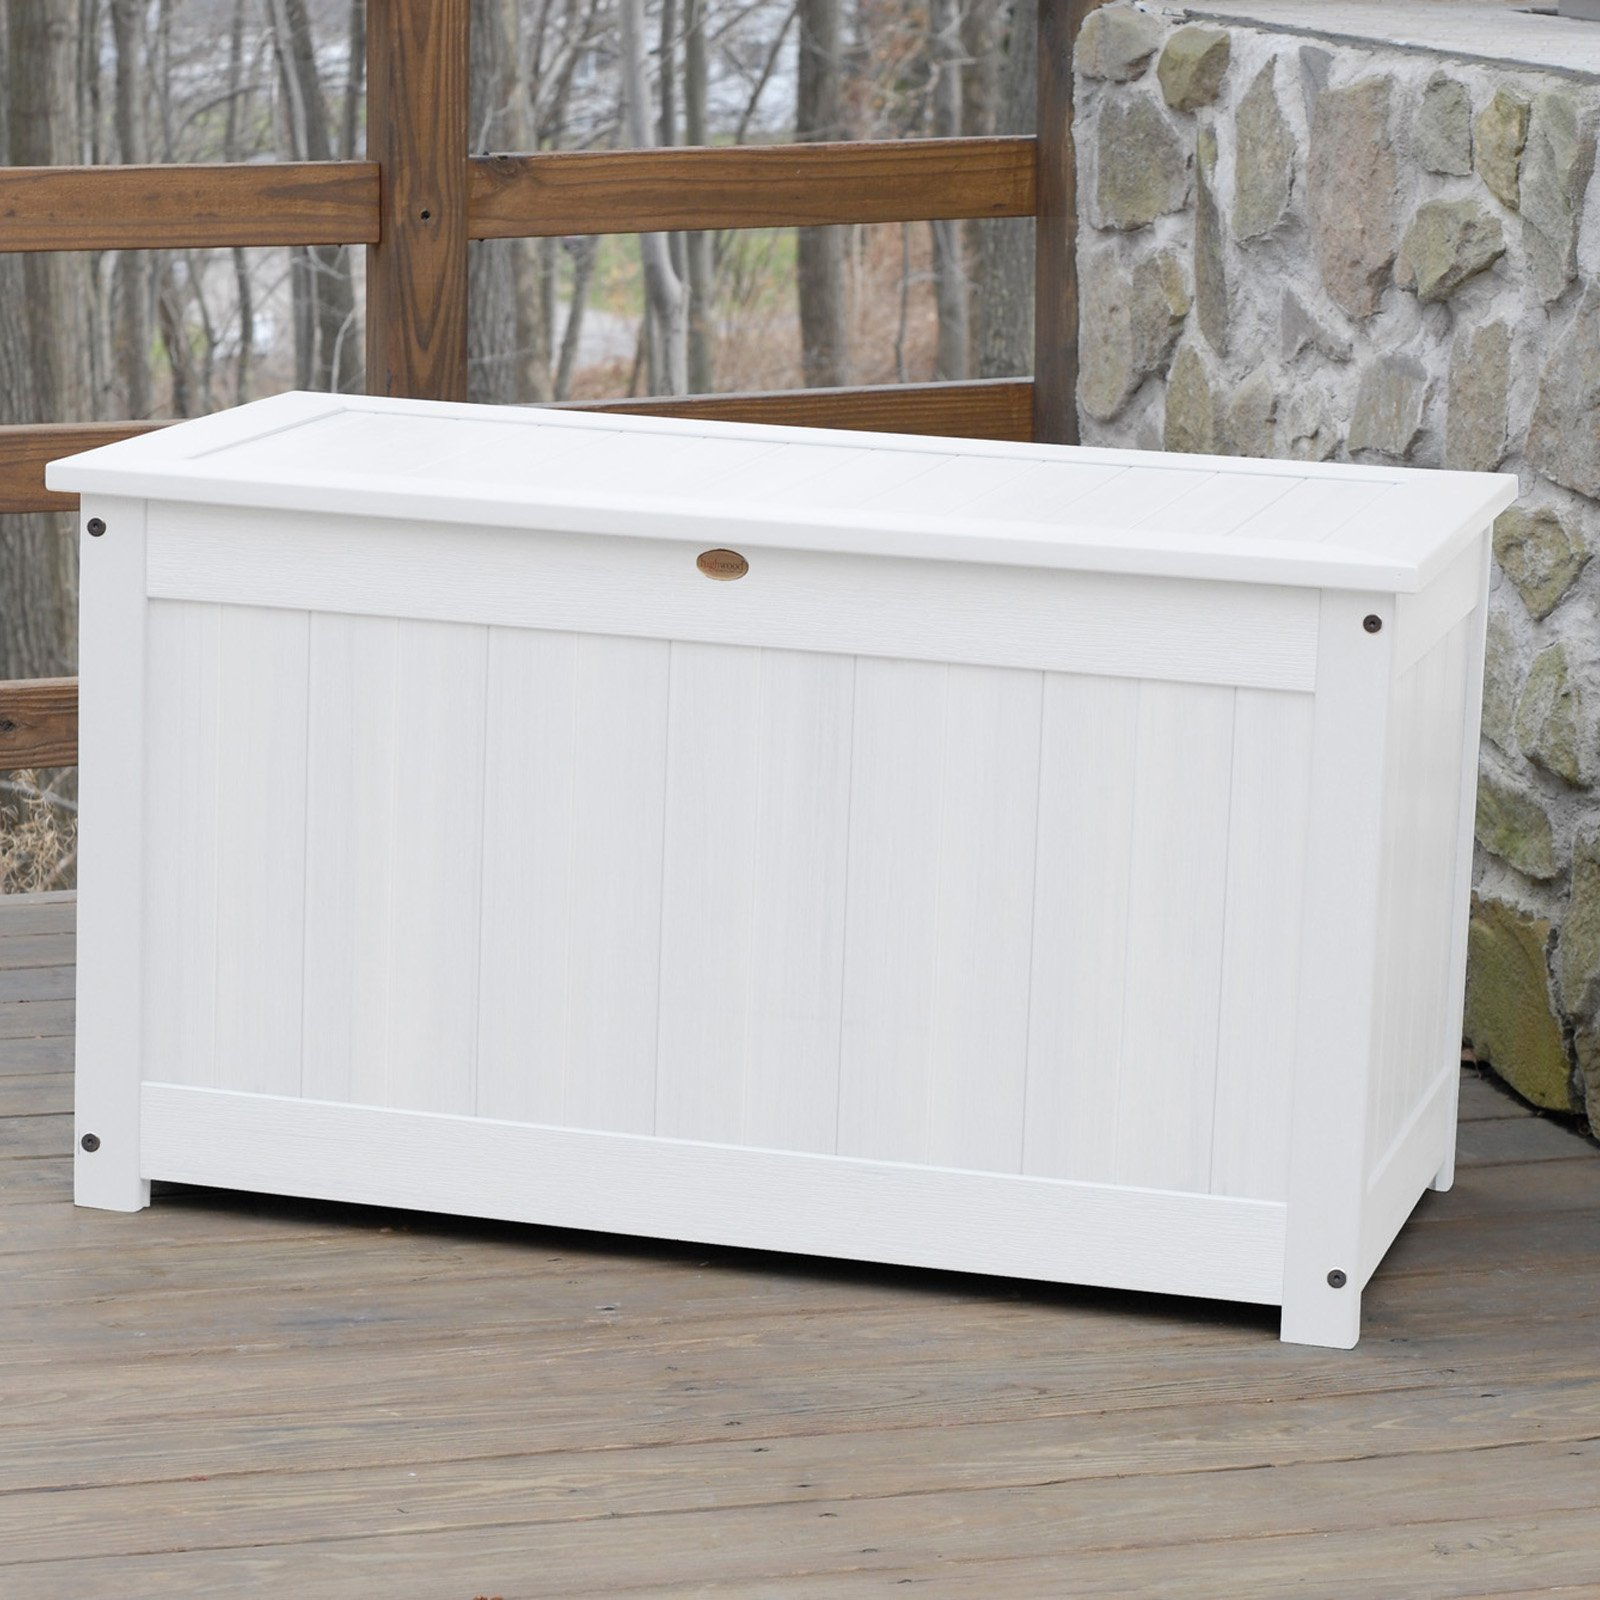 highwood 42 in large recycled plastic 100 gallon deck storage box